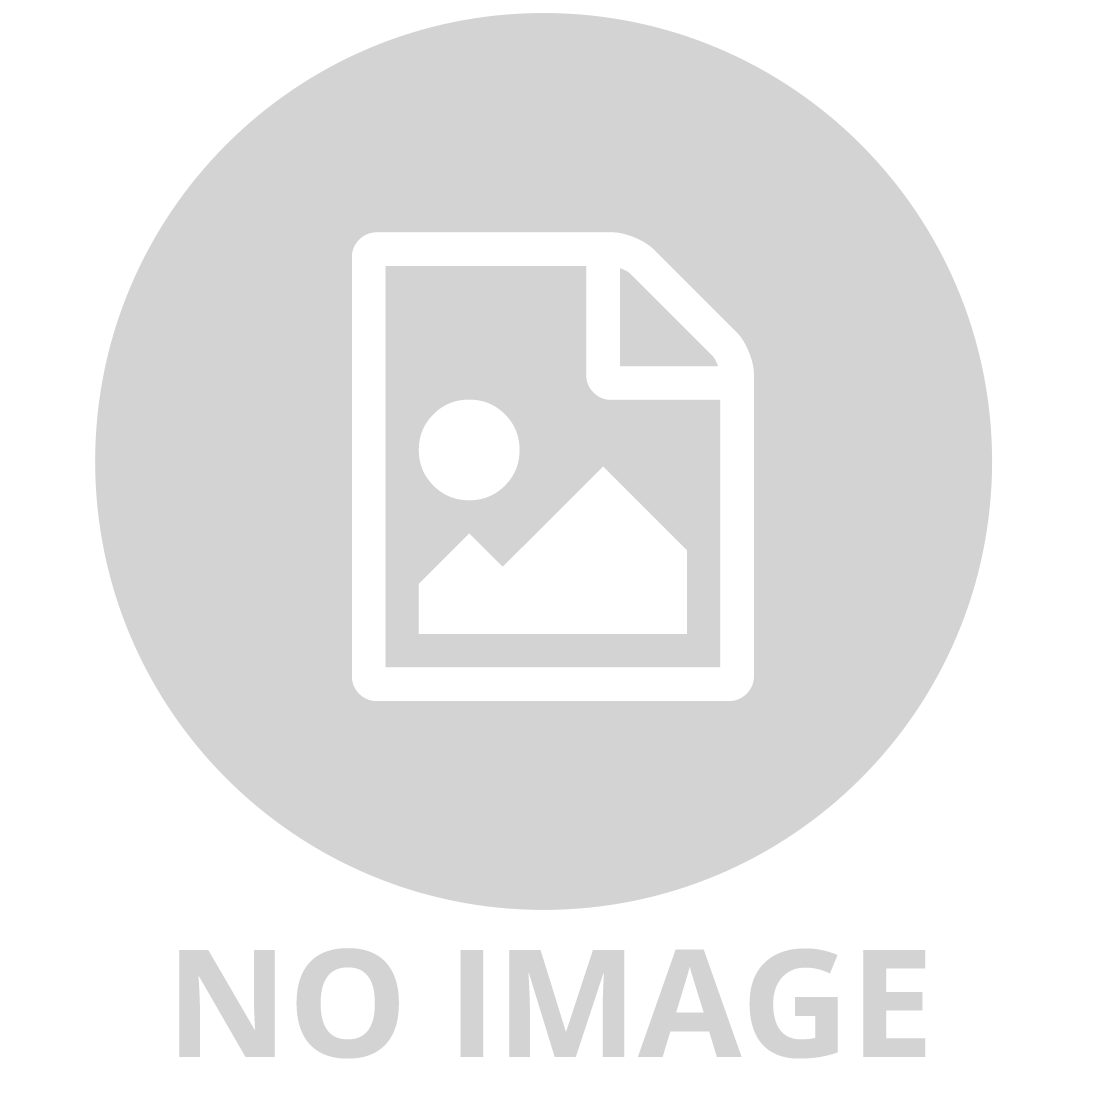 SEA LIFE MAGNETIC REWARD CHART